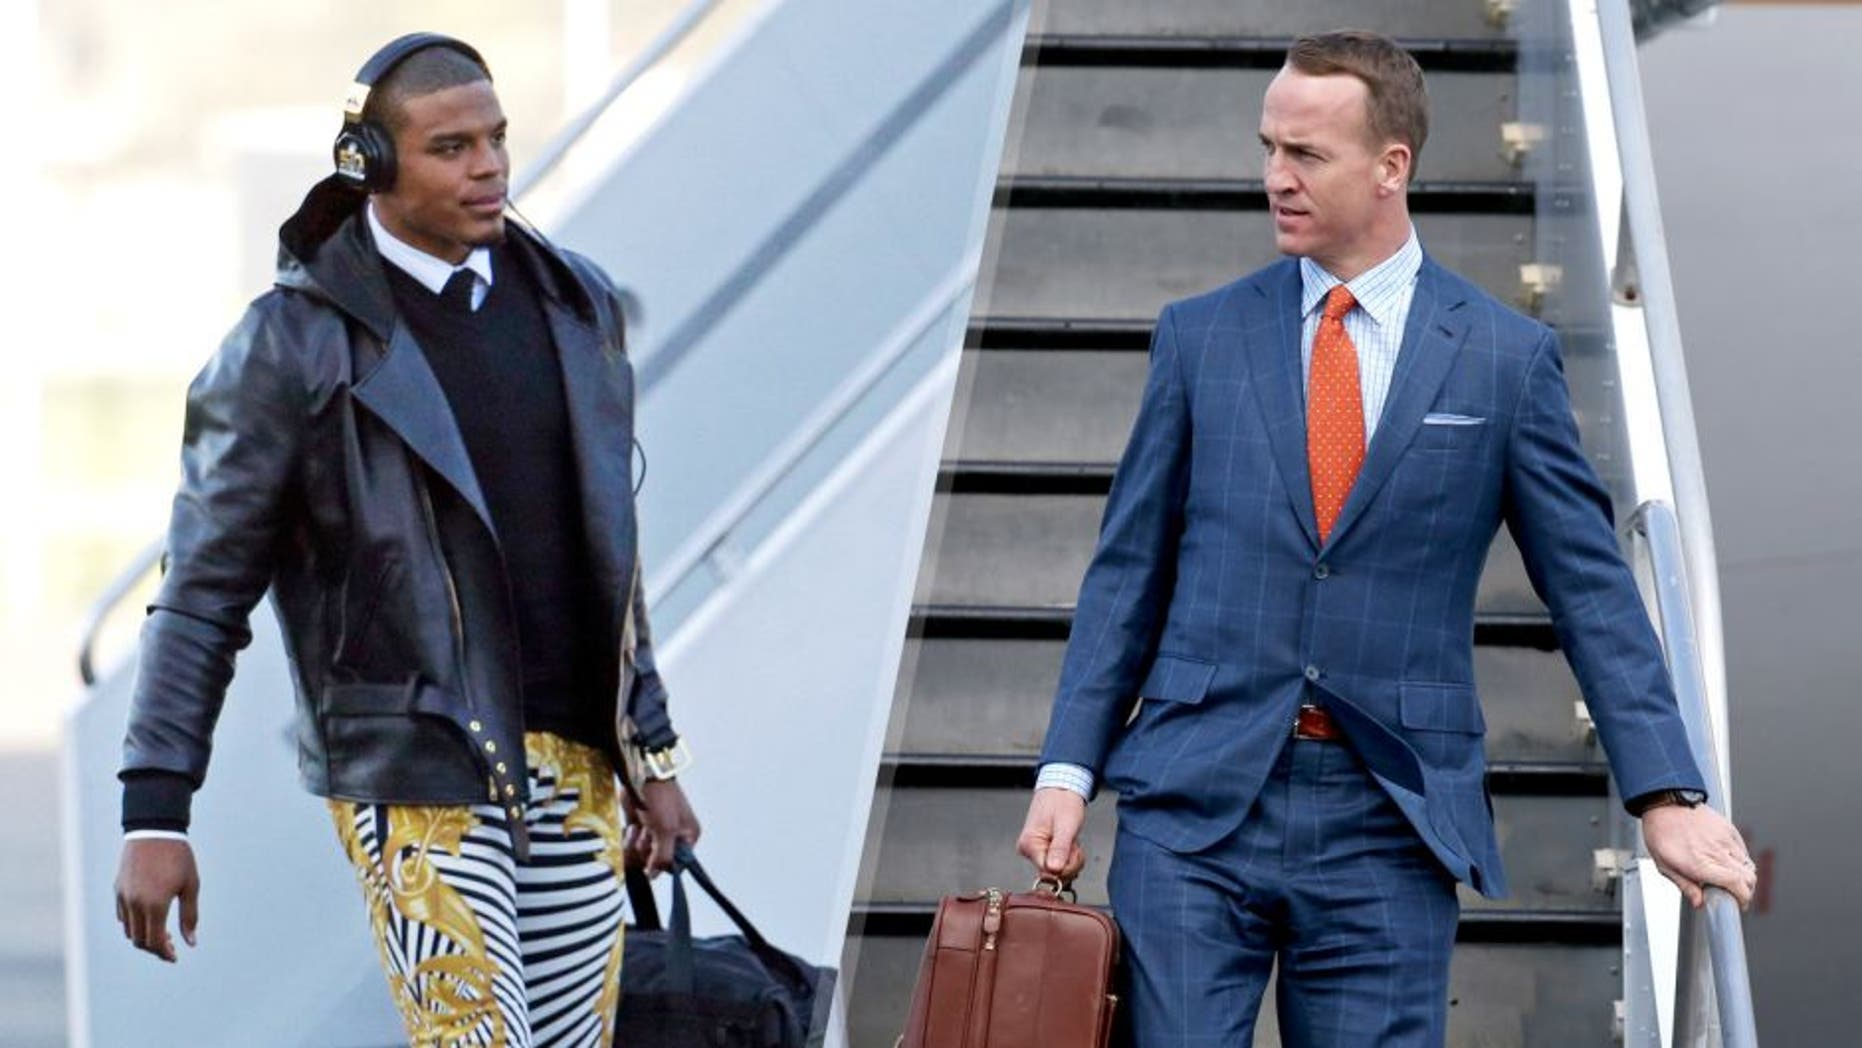 Carolina Panthers' Cam Newton gets off the plane at the Mineta San Jose International Airport as they arrive for the NFL Super Bowl football game Sunday, Jan. 31, 2016, in San Jose, Calif. The Panthers play the Denver Broncos on Sunday, Feb. 7, 2015, in Super Bowl 50. (AP Photo/Charlie Riedel), Jan 31, 2016; San Jose, CA, USA; Denver Broncos quarterback Peyton Manning exits a plane during team arrivals at the Mineta San Jose International Airport in preparation of Super Bowl 50 against the Carolina Panthers. Mandatory Credit: Cary Edmondson-USA TODAY Sports